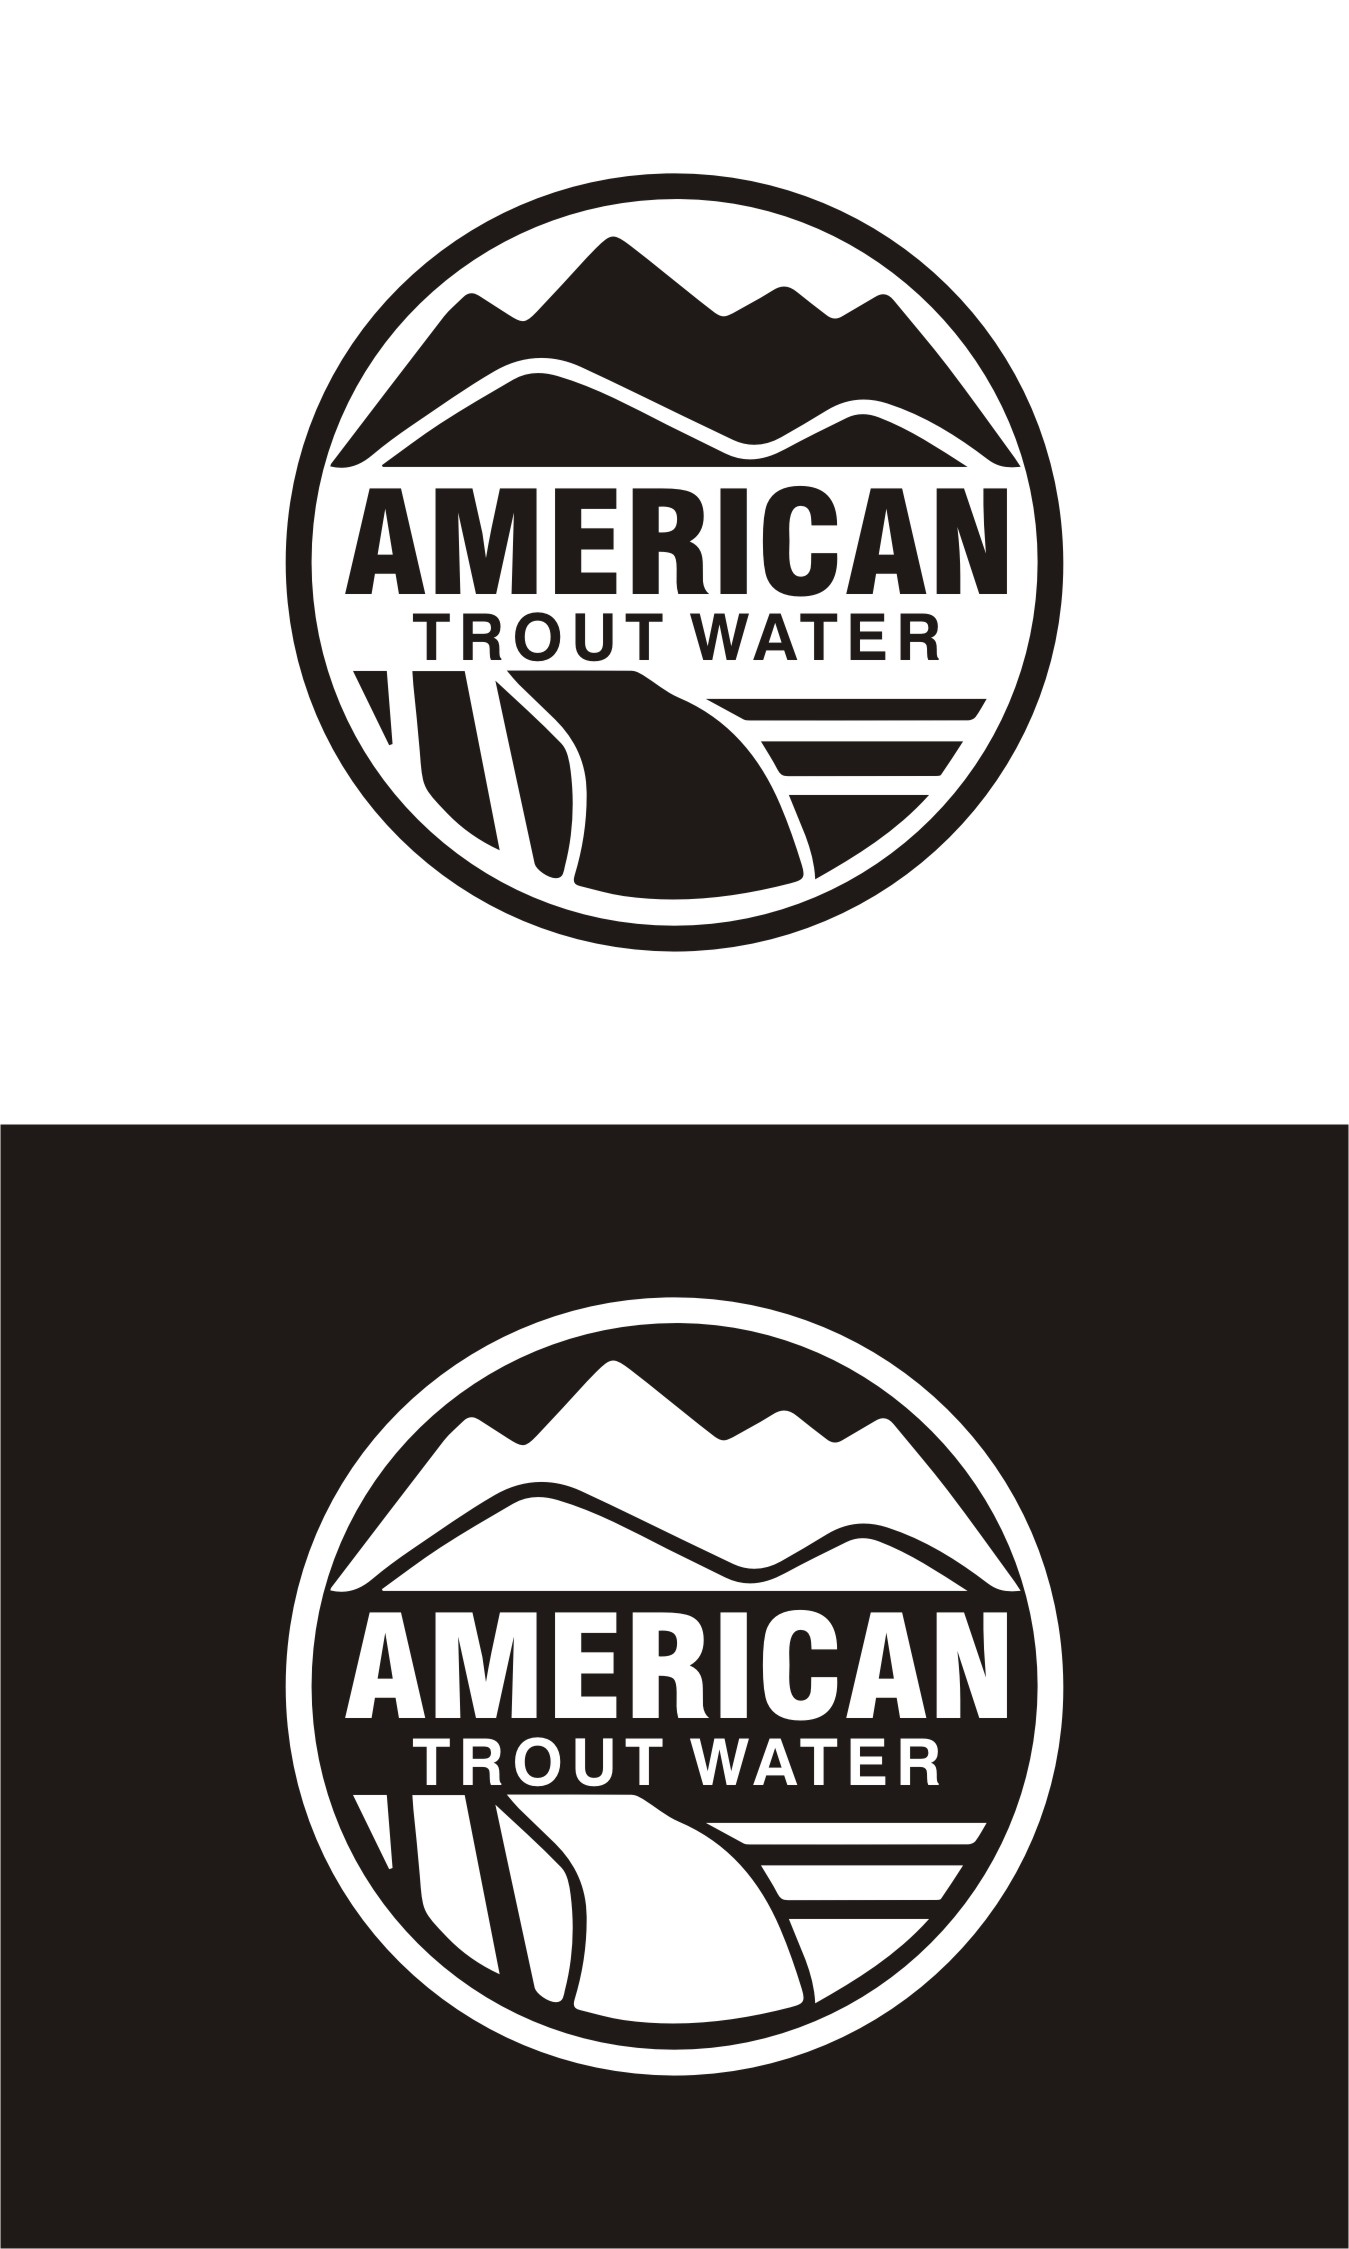 Logo Design by Spider Graphics - Entry No. 47 in the Logo Design Contest American Trout Water Logo Design.